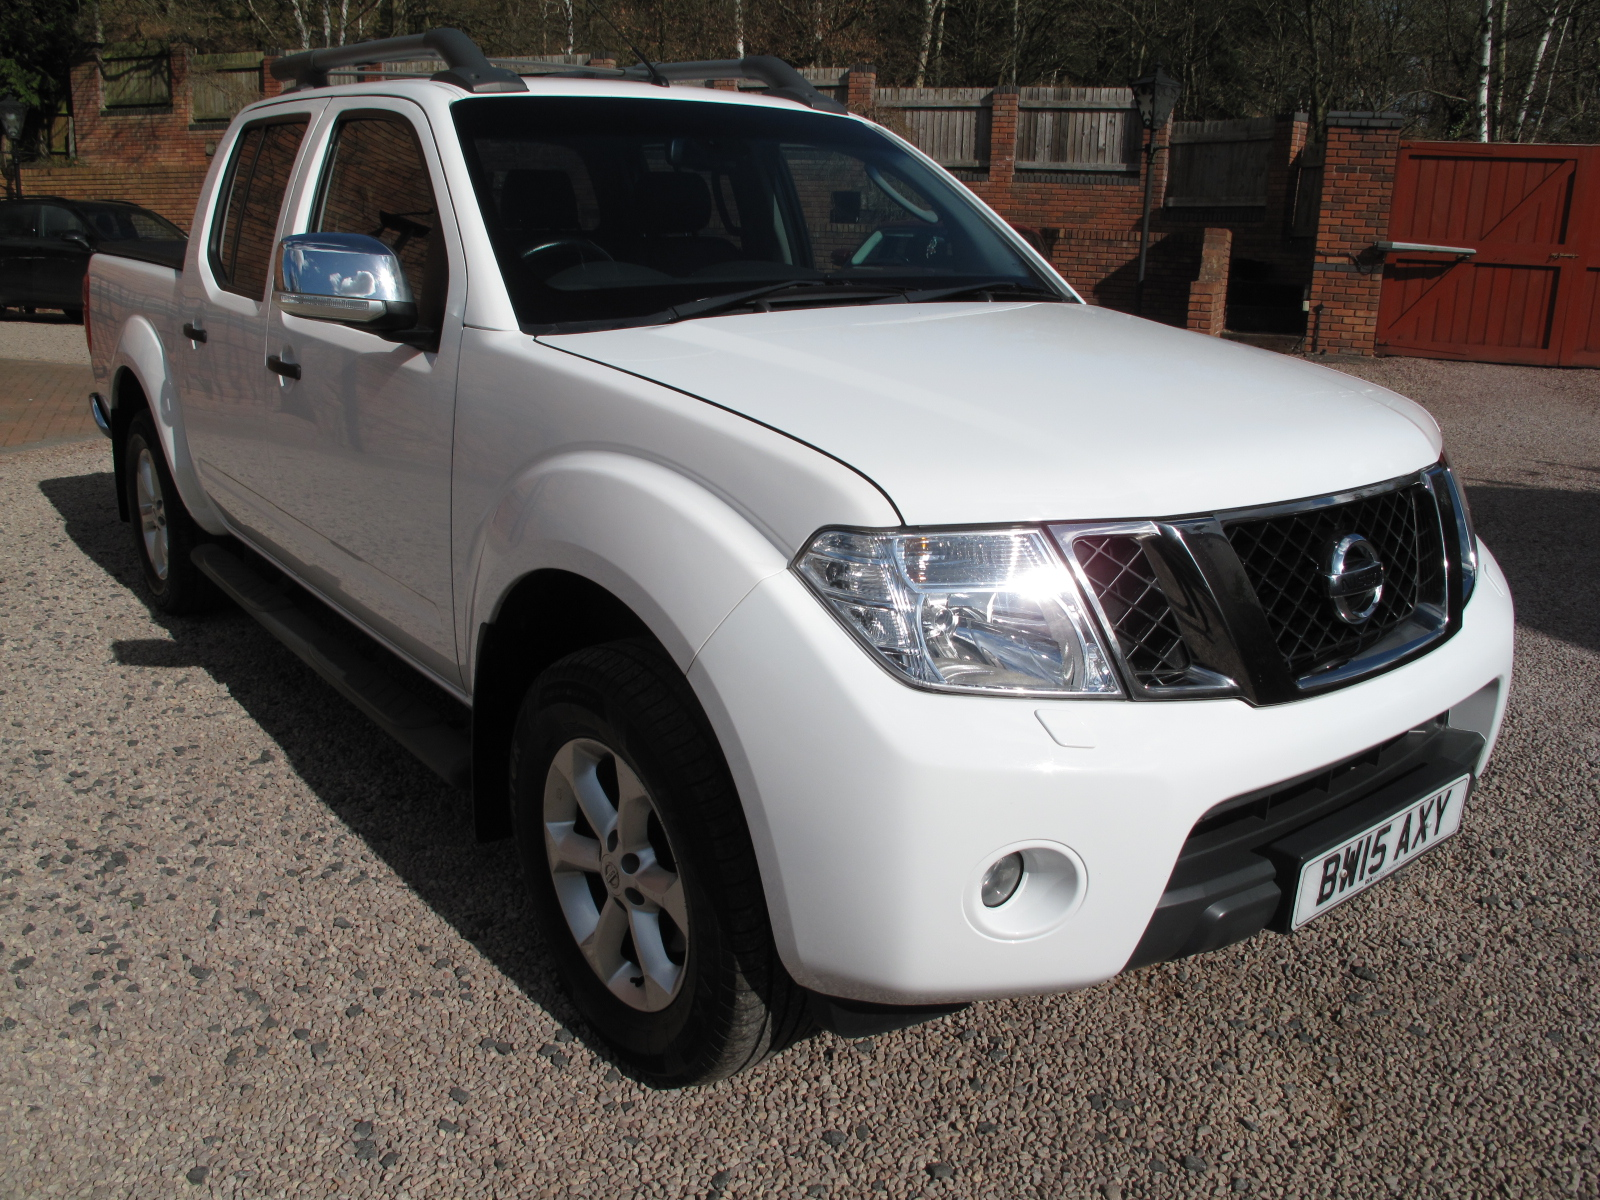 2015 15 Nissan Navara 2.5 dCi Tekna Premium Connect Double Cab Pickup 4WD VERY LOW MILES! TOP OF THE RANGE! STUNNING CONDITION! 1 OWNER NO VAT!